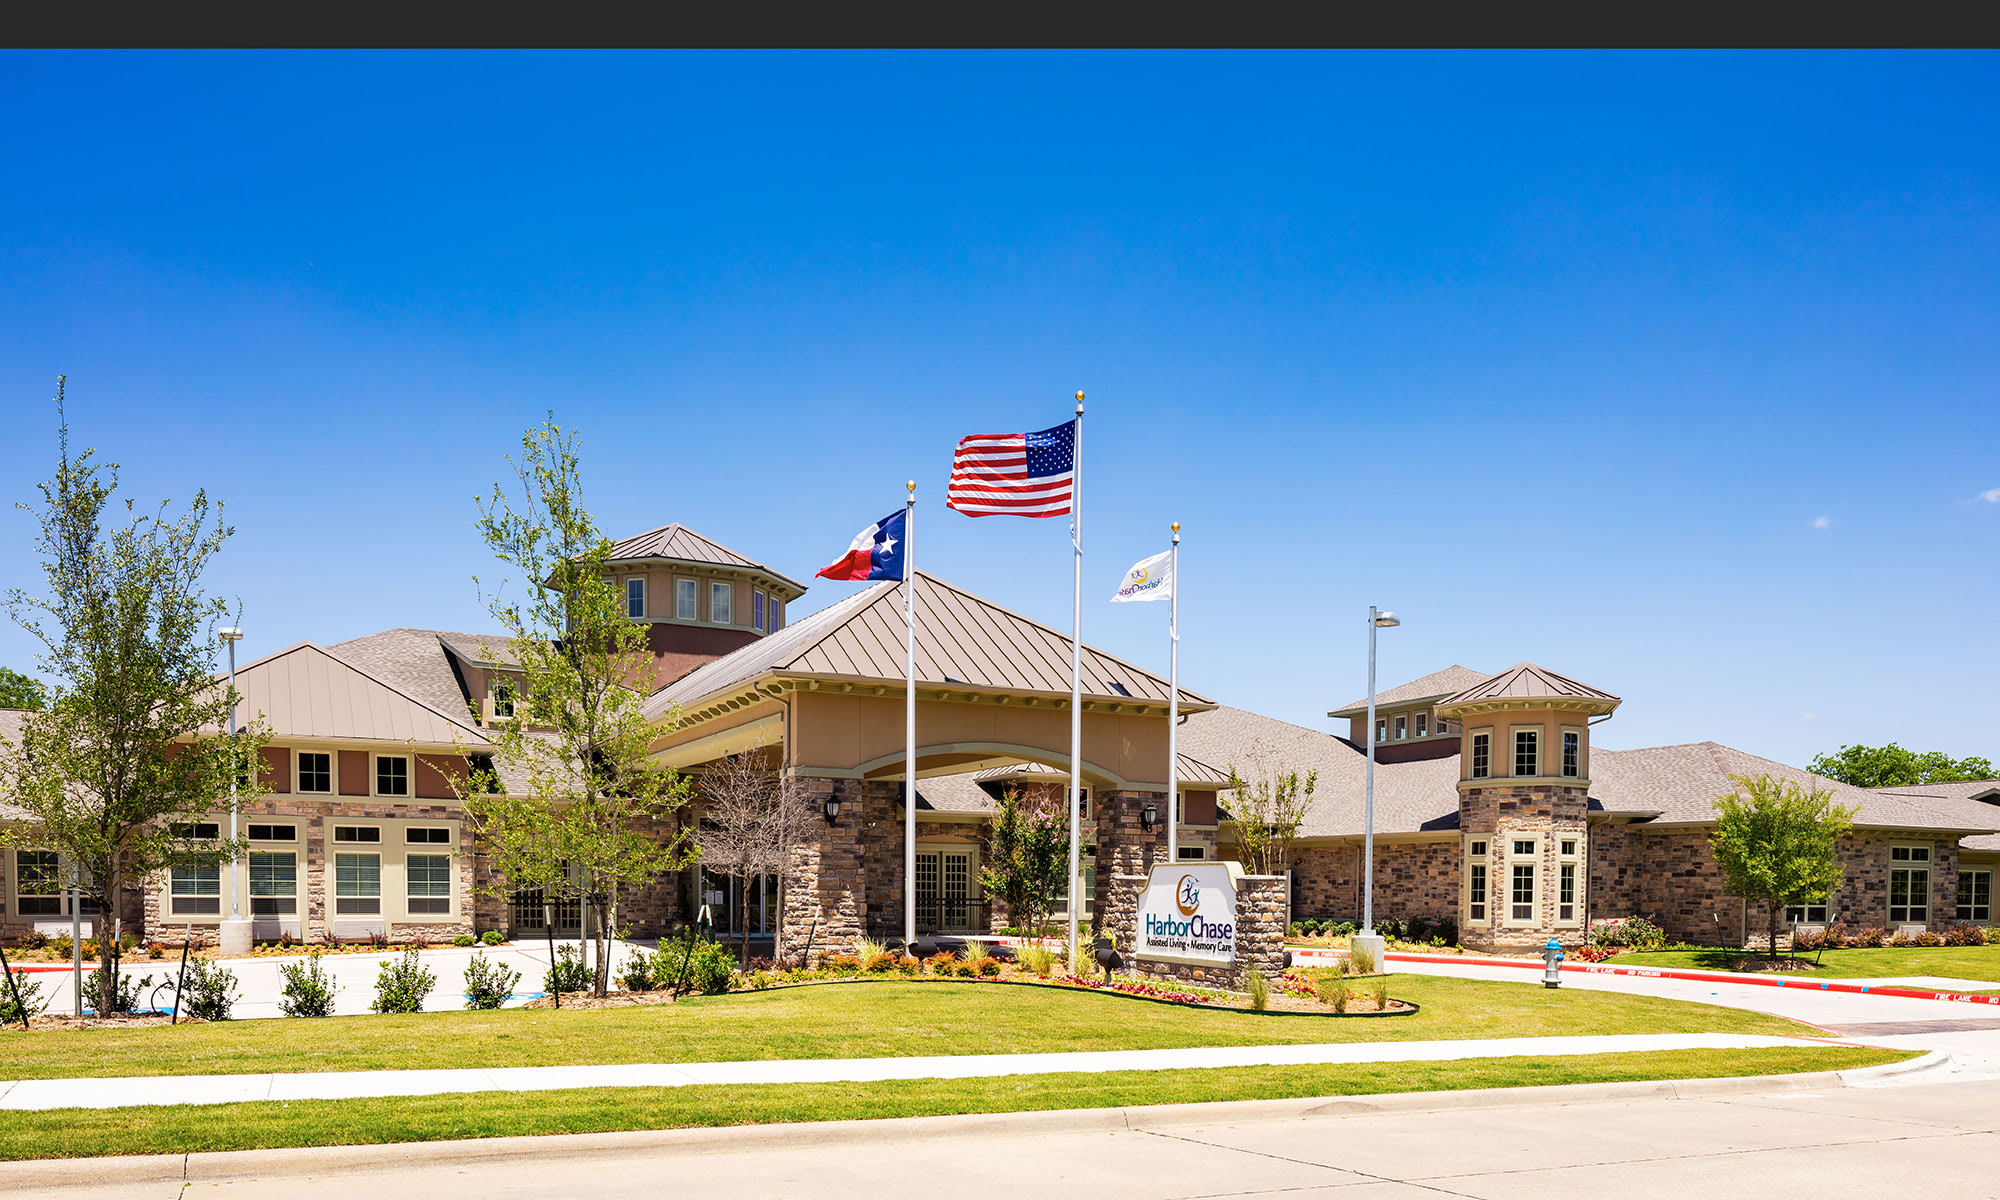 Exquisite senior living facility located in McKinney